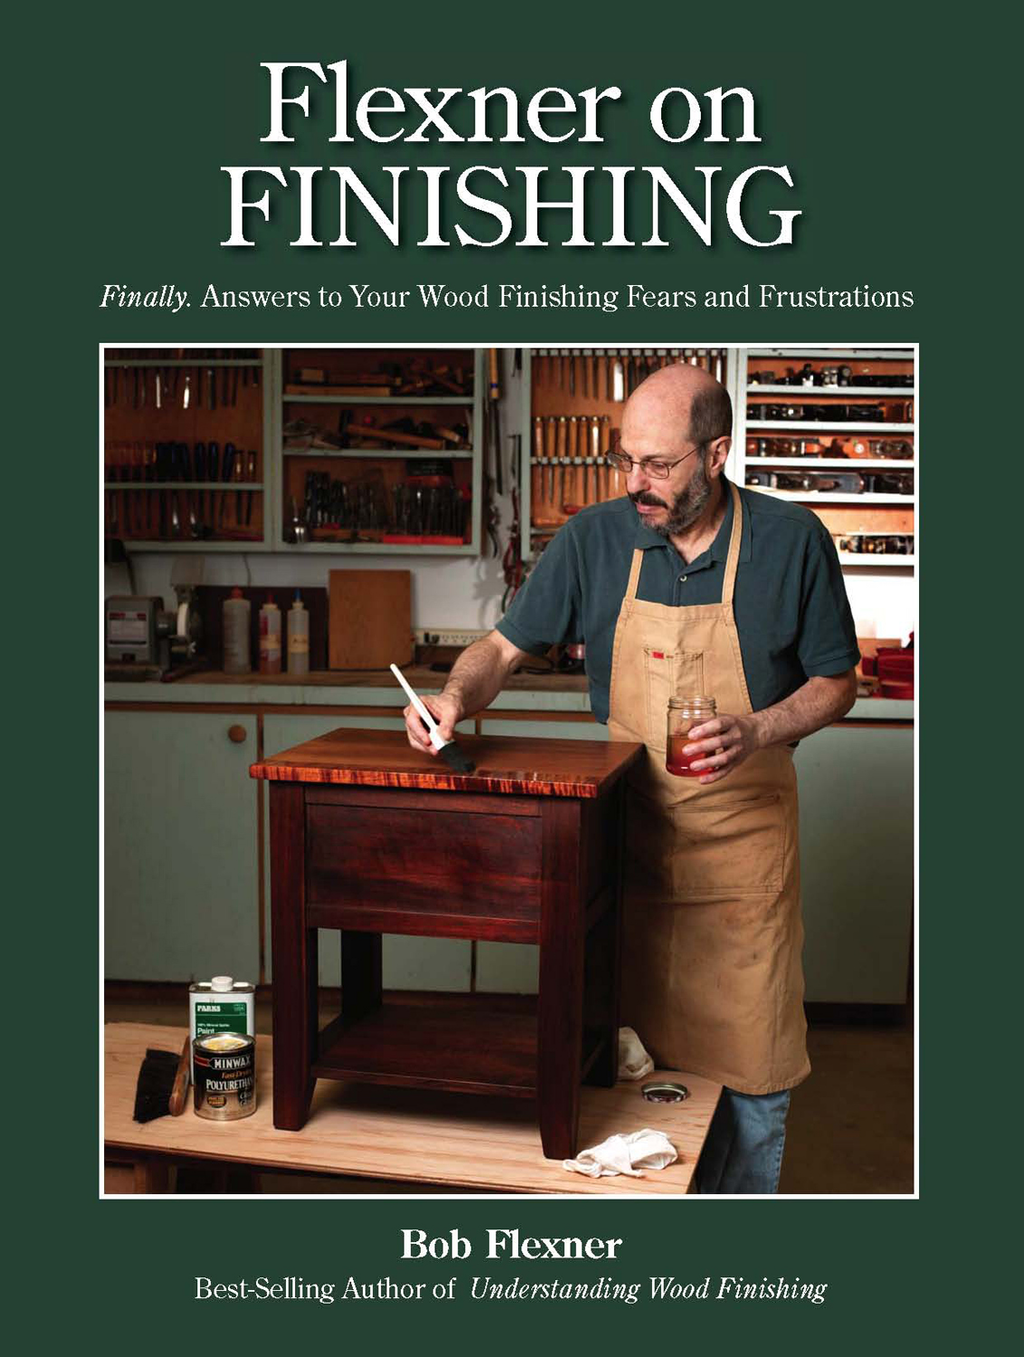 Flexner on Finishing Finally - Answers to Your Wood Finishing Fears & Frustrations